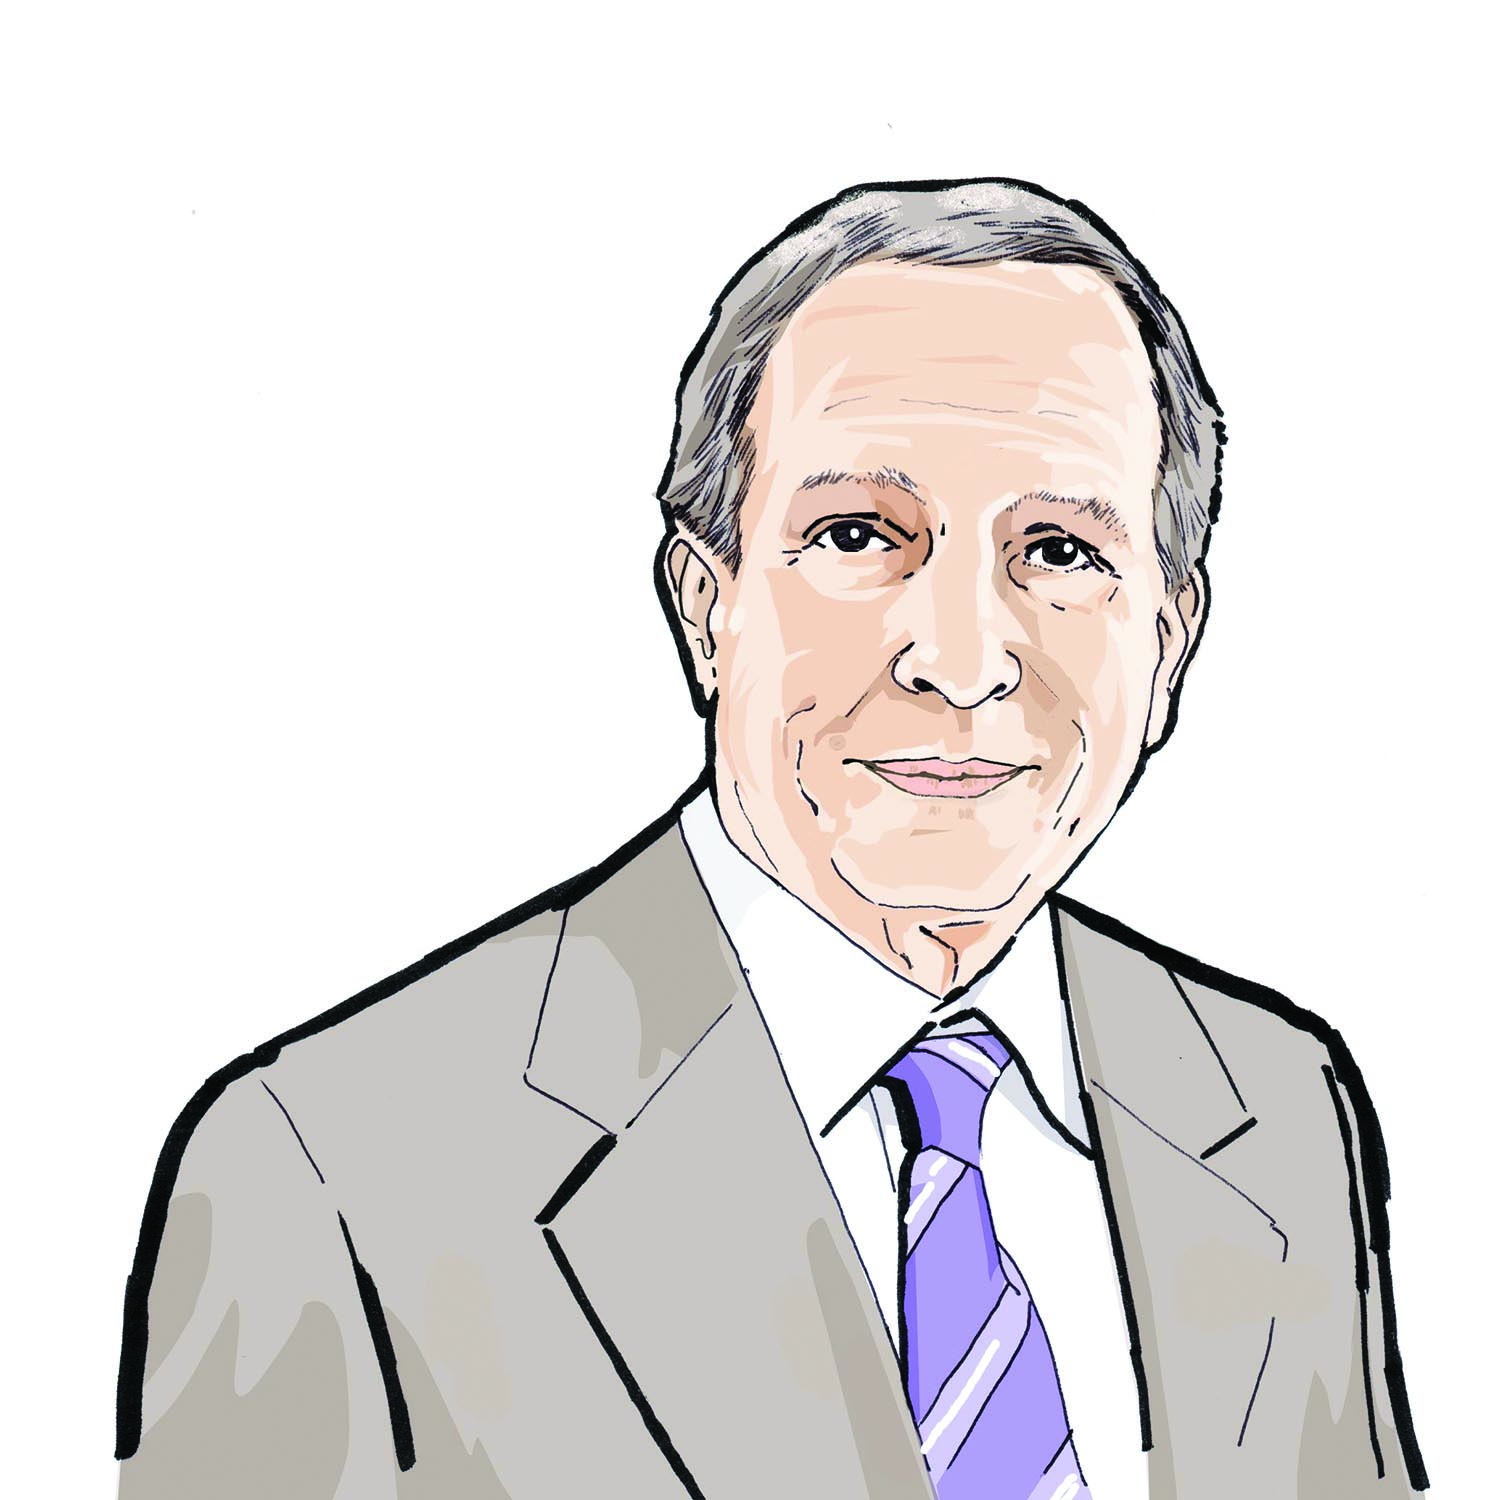 Illustration of Eric Gleacher, '67